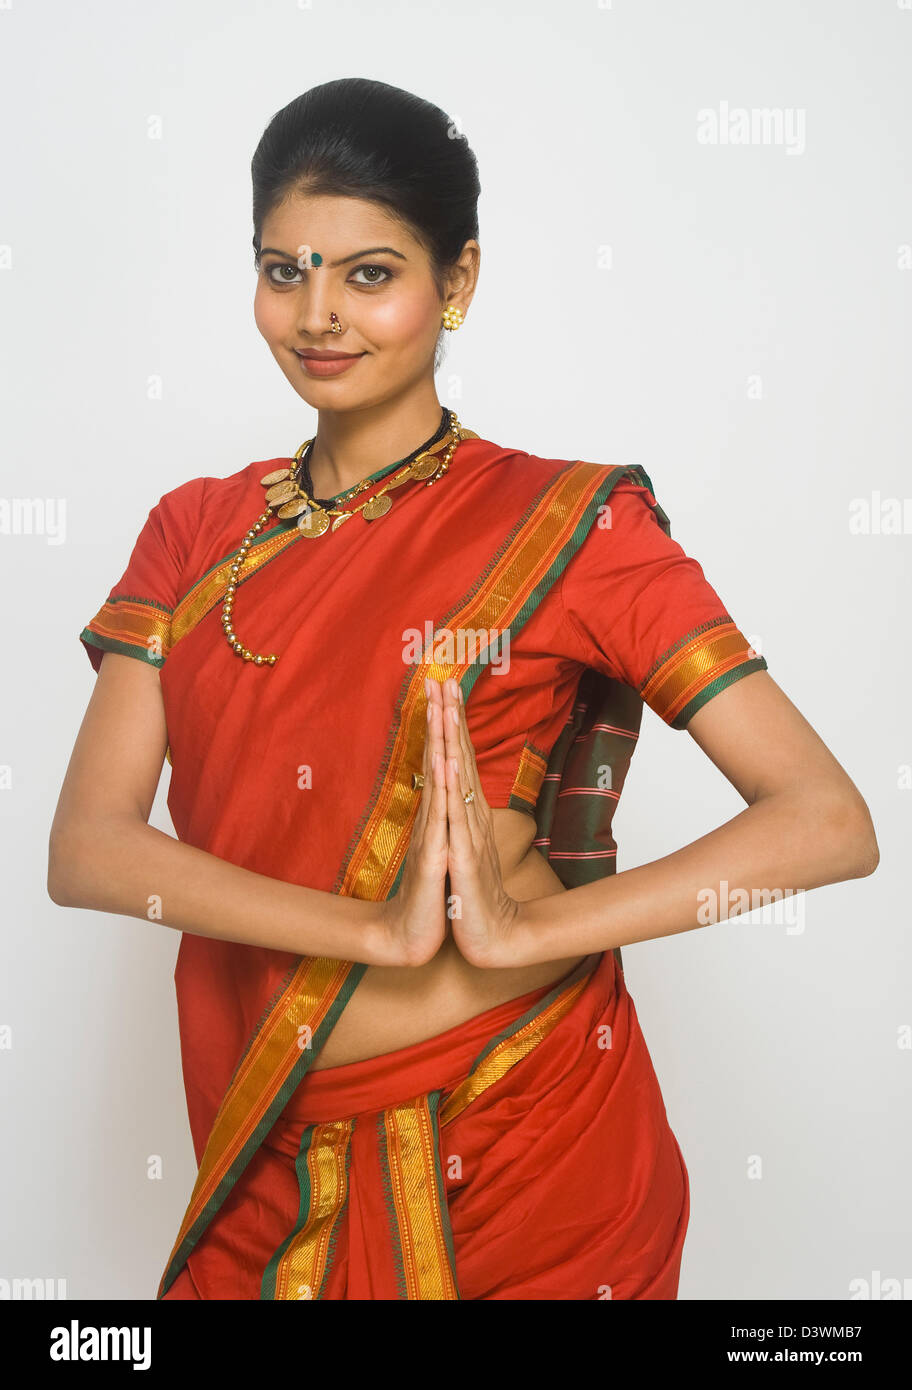 Portrait of a Maharashtrian woman greeting in prayer position - Stock Image